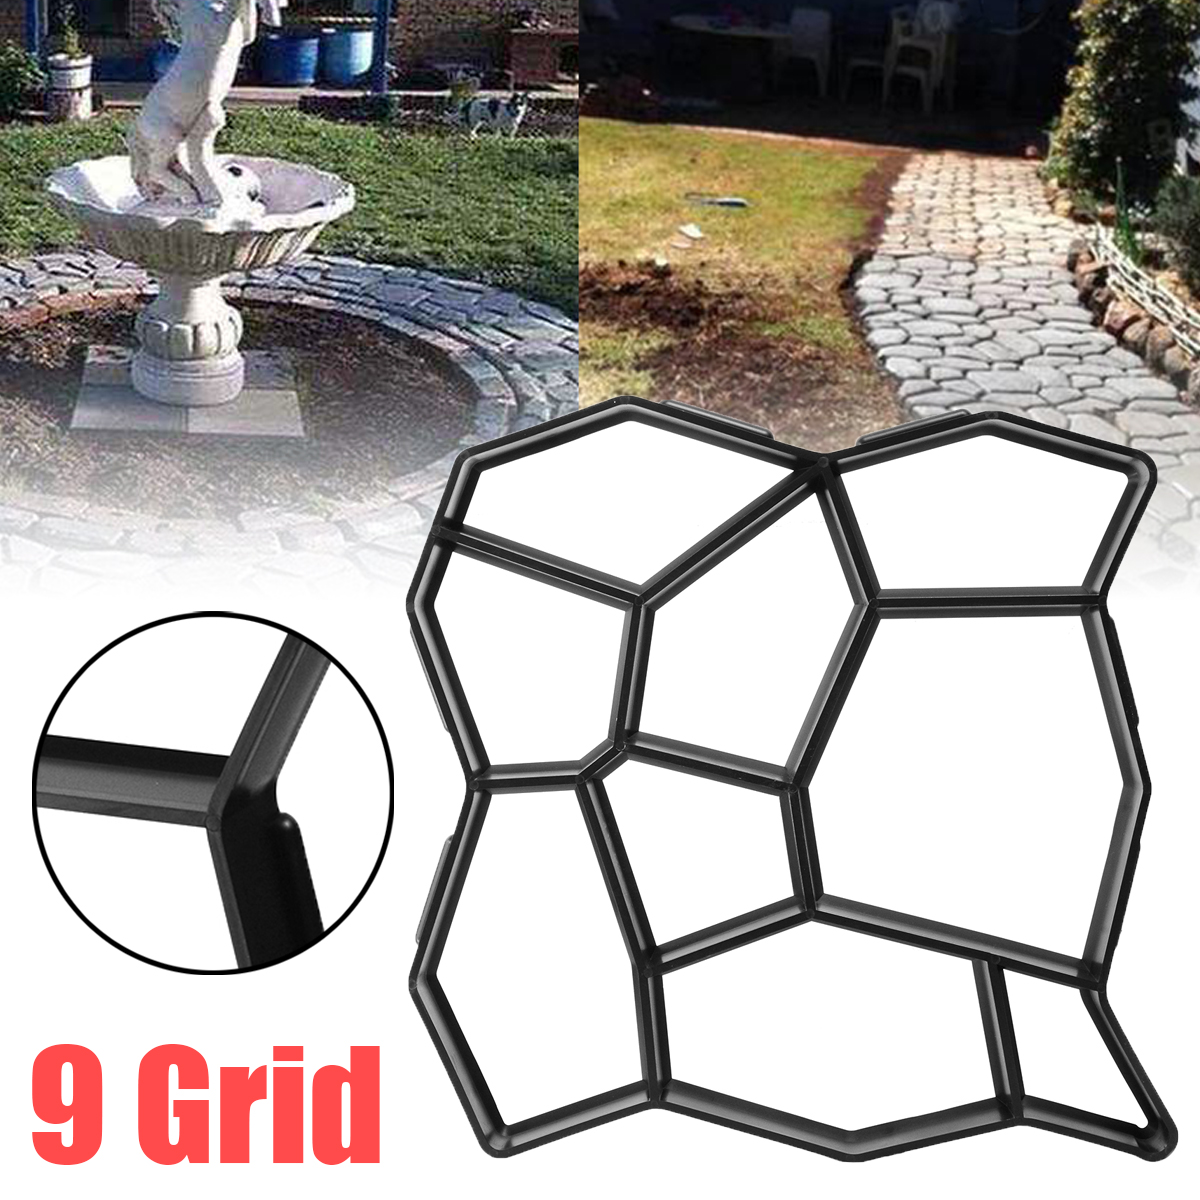 9 Grid 50cm Garden Pavement Mold Walk Pavement Concrete Mould DIY Paving Cement Brick Stone Road Floor Path Maker Mould